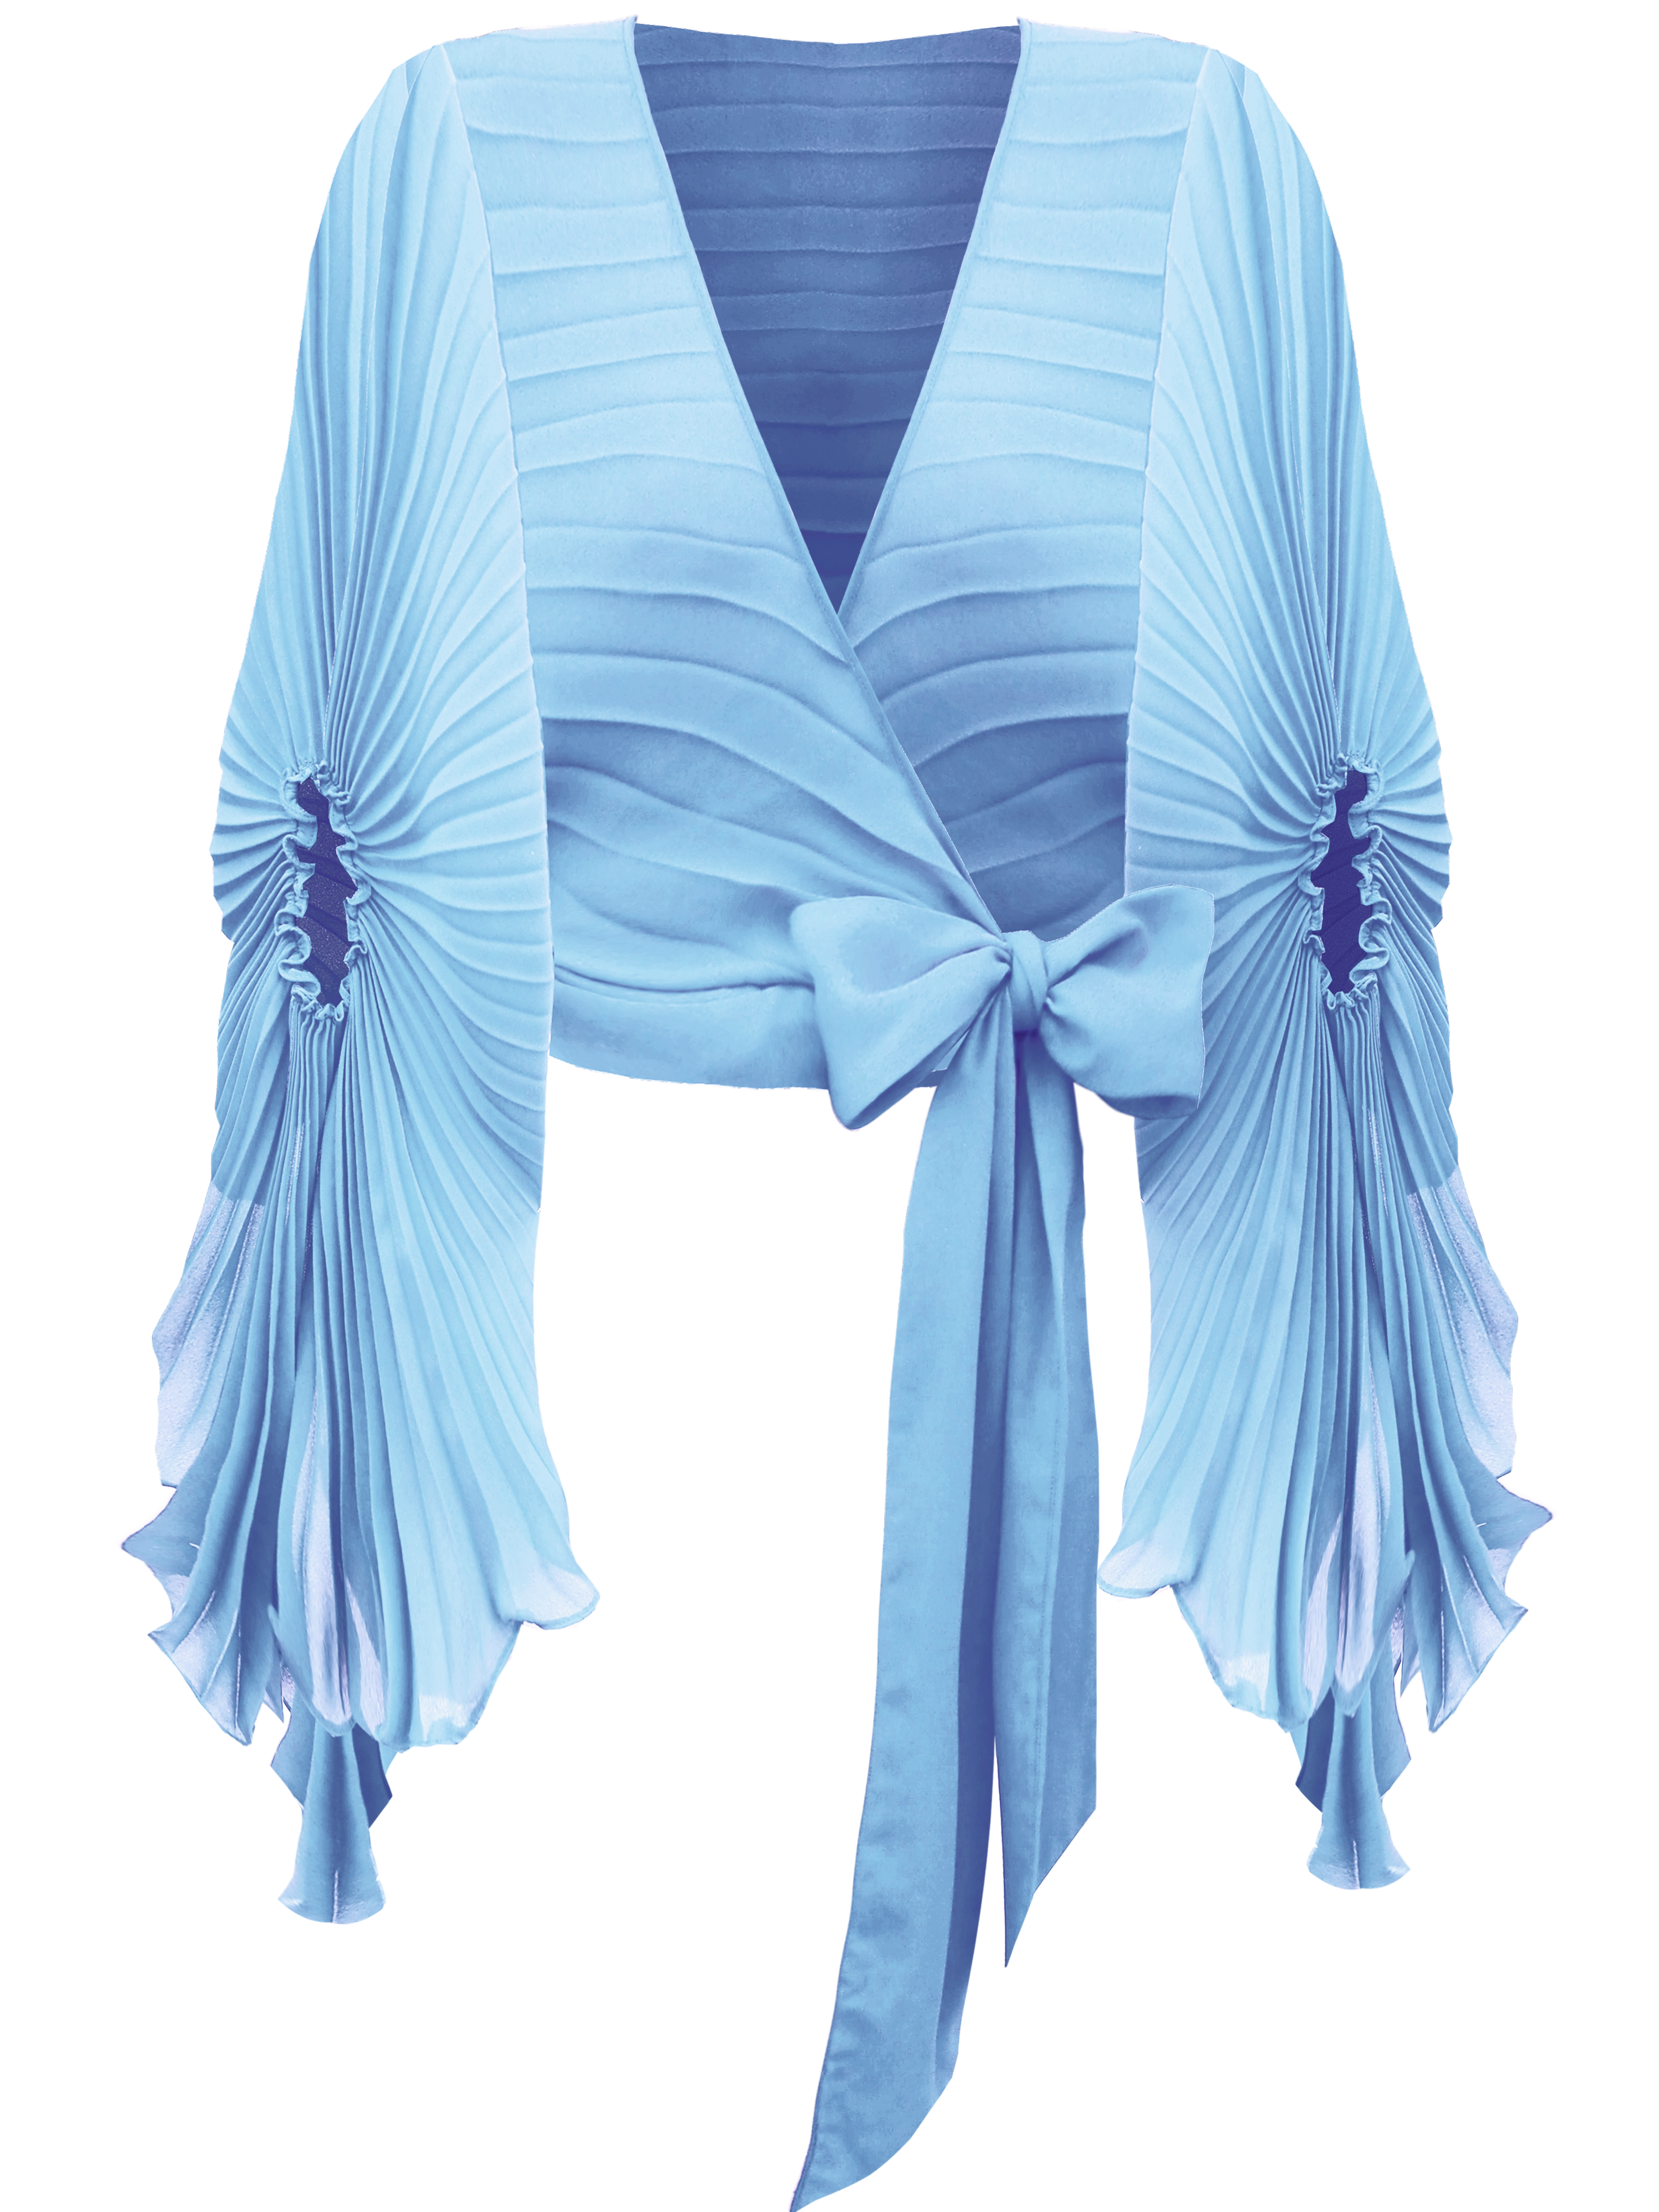 Beam Wrap Top, Candy Blue by Georgia Hardinge on curated-crowd.com